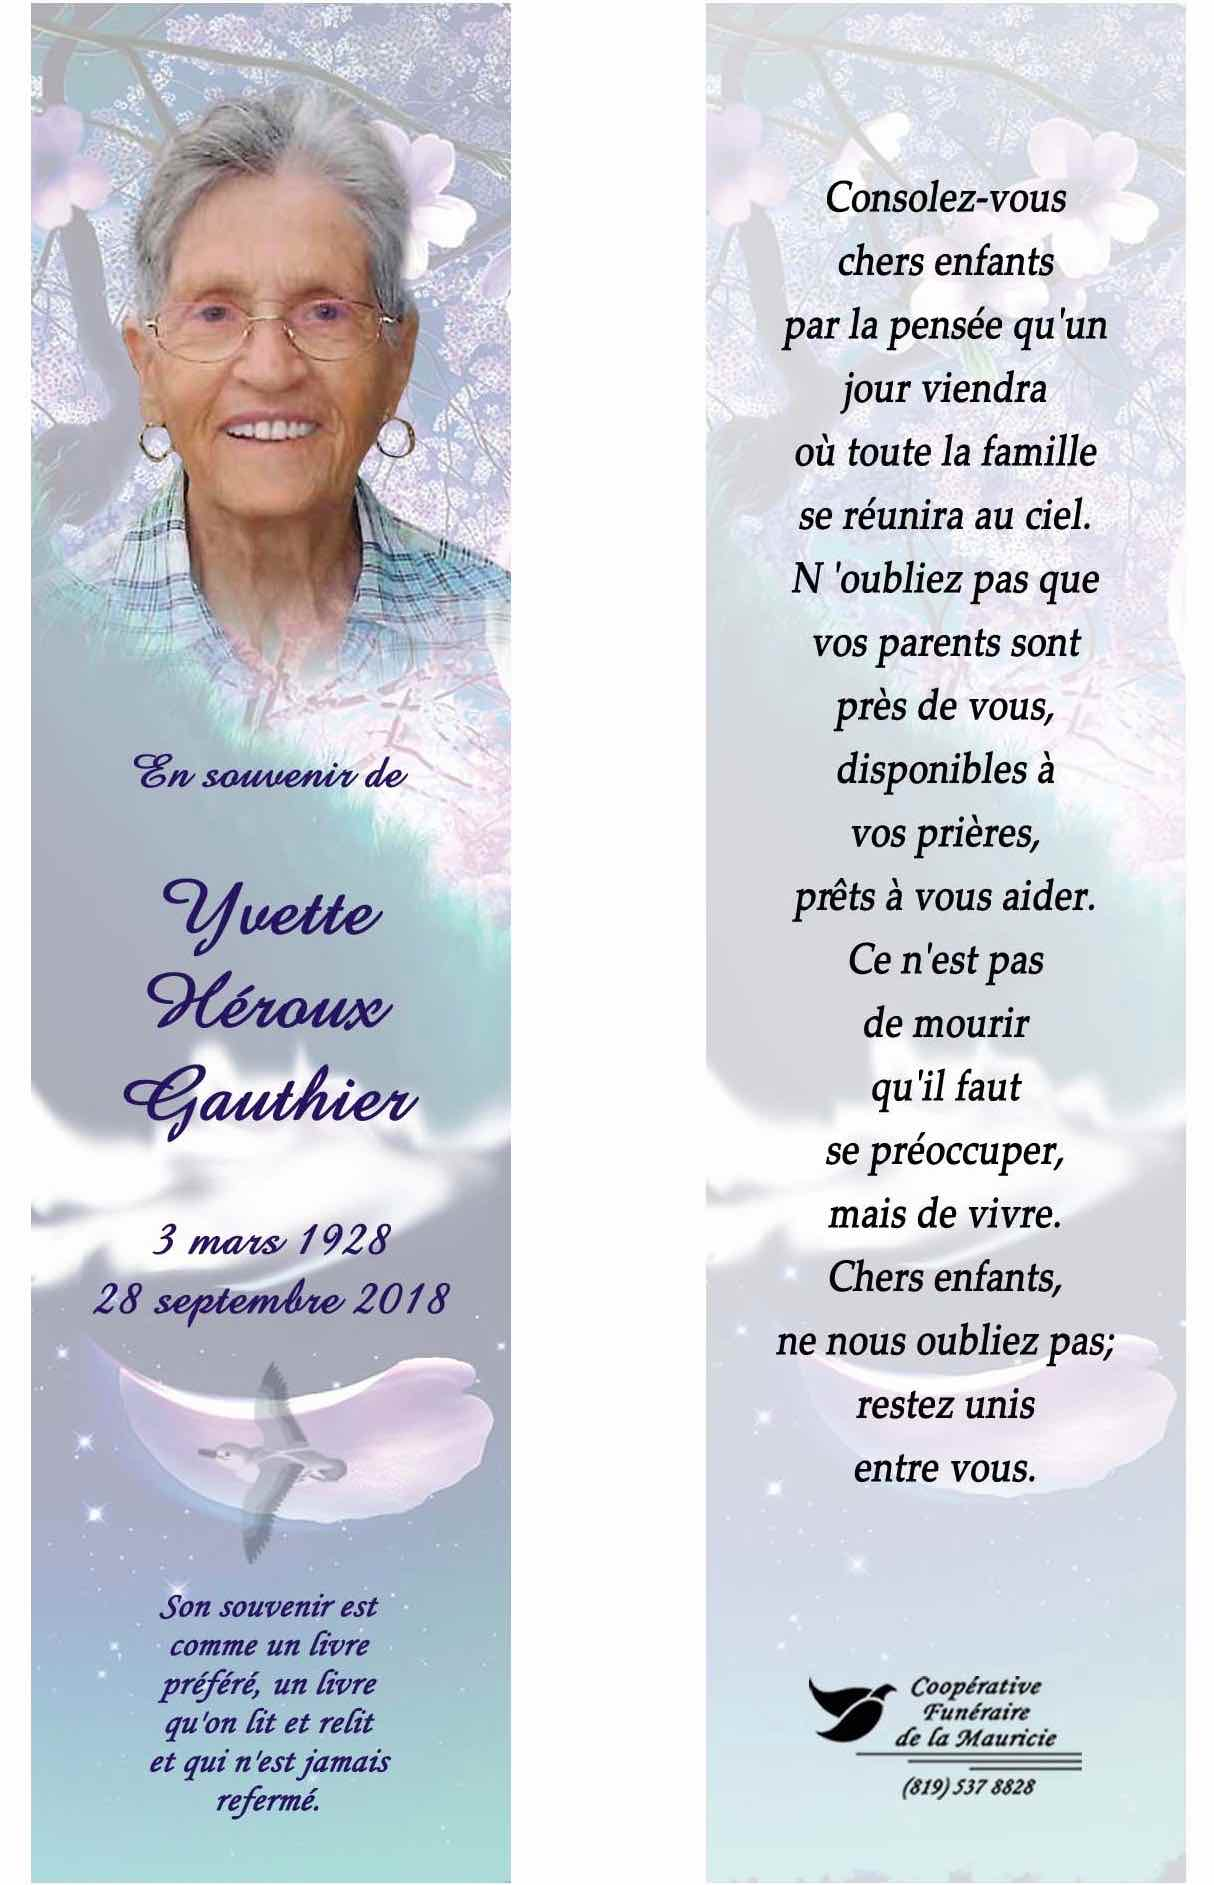 Poeme Pour Le Deces D Une Grand Mere : poeme, deces, grand, Mère, Blogue, Jacques, Gauthier